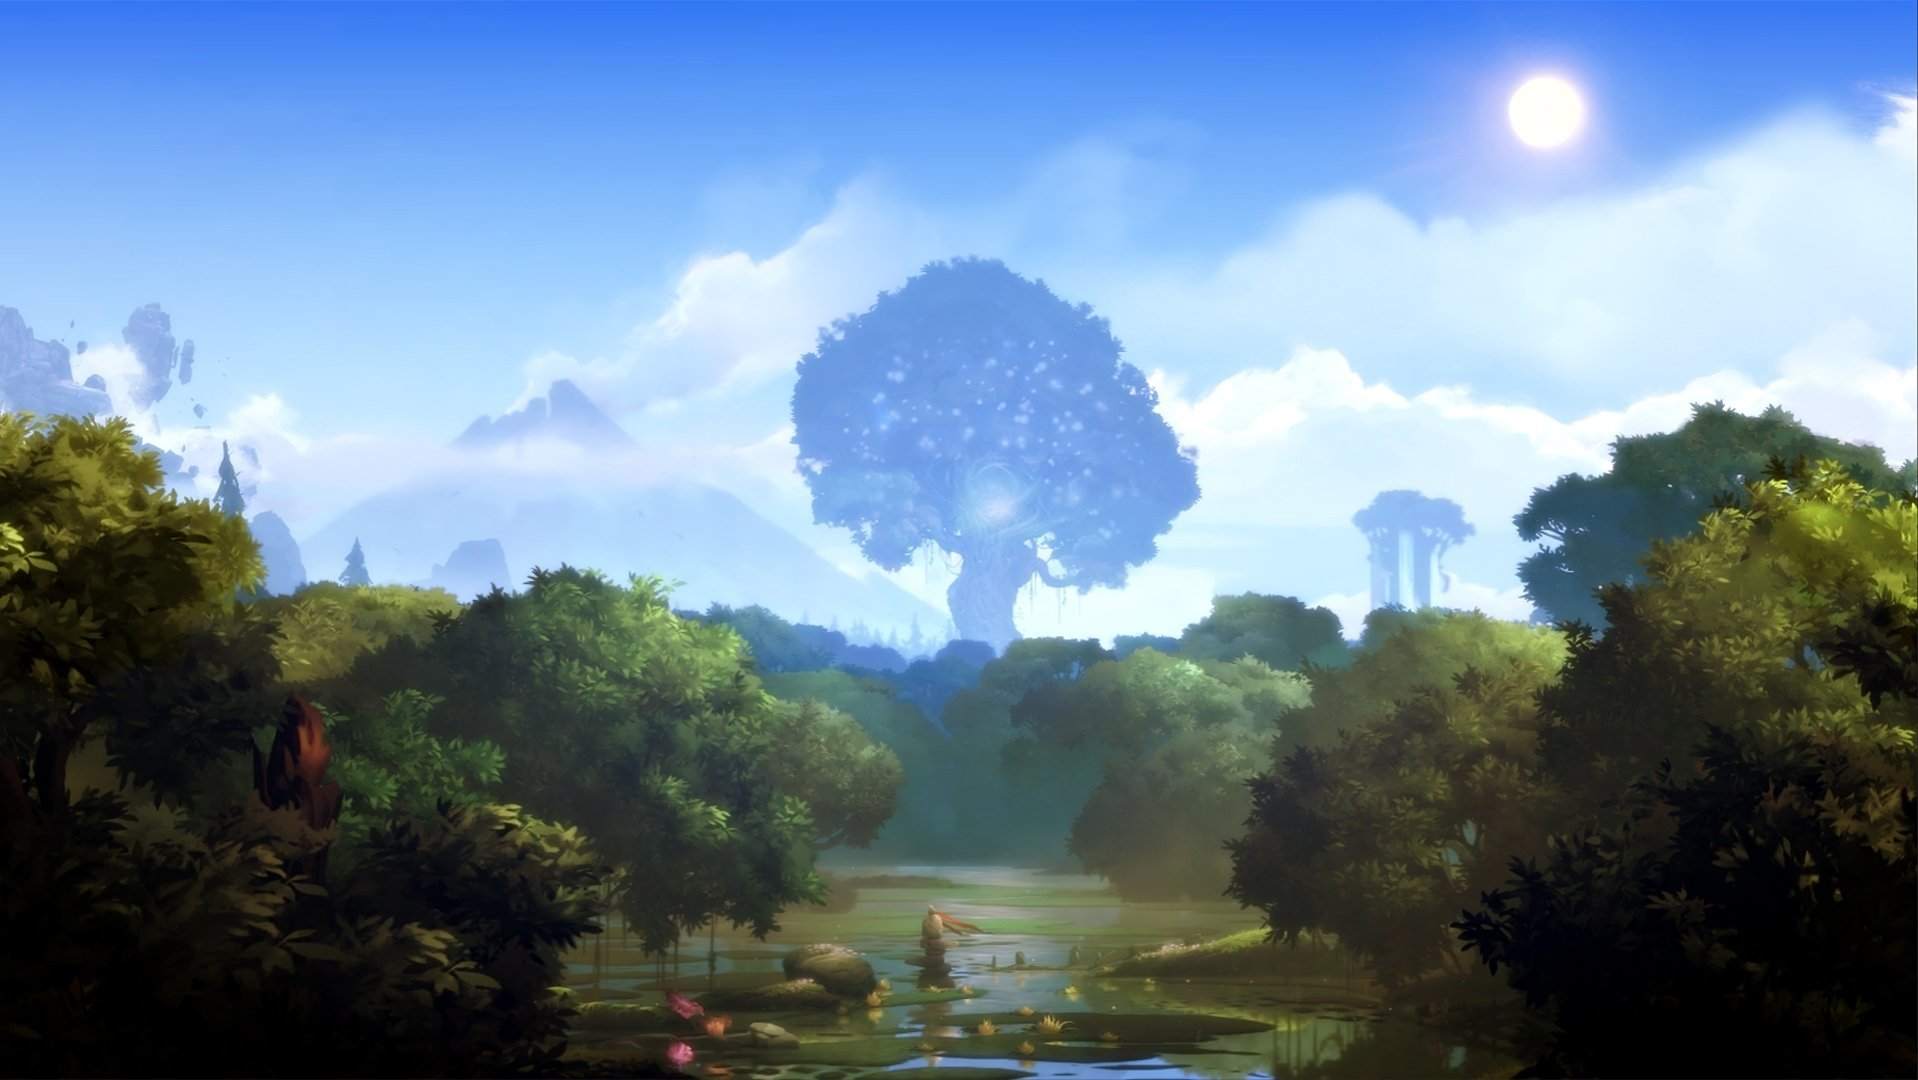 Ori And The Blind Forest Hd Wallpaper: Ori And The Blind Forest Fond D'écran And Arrière-Plan